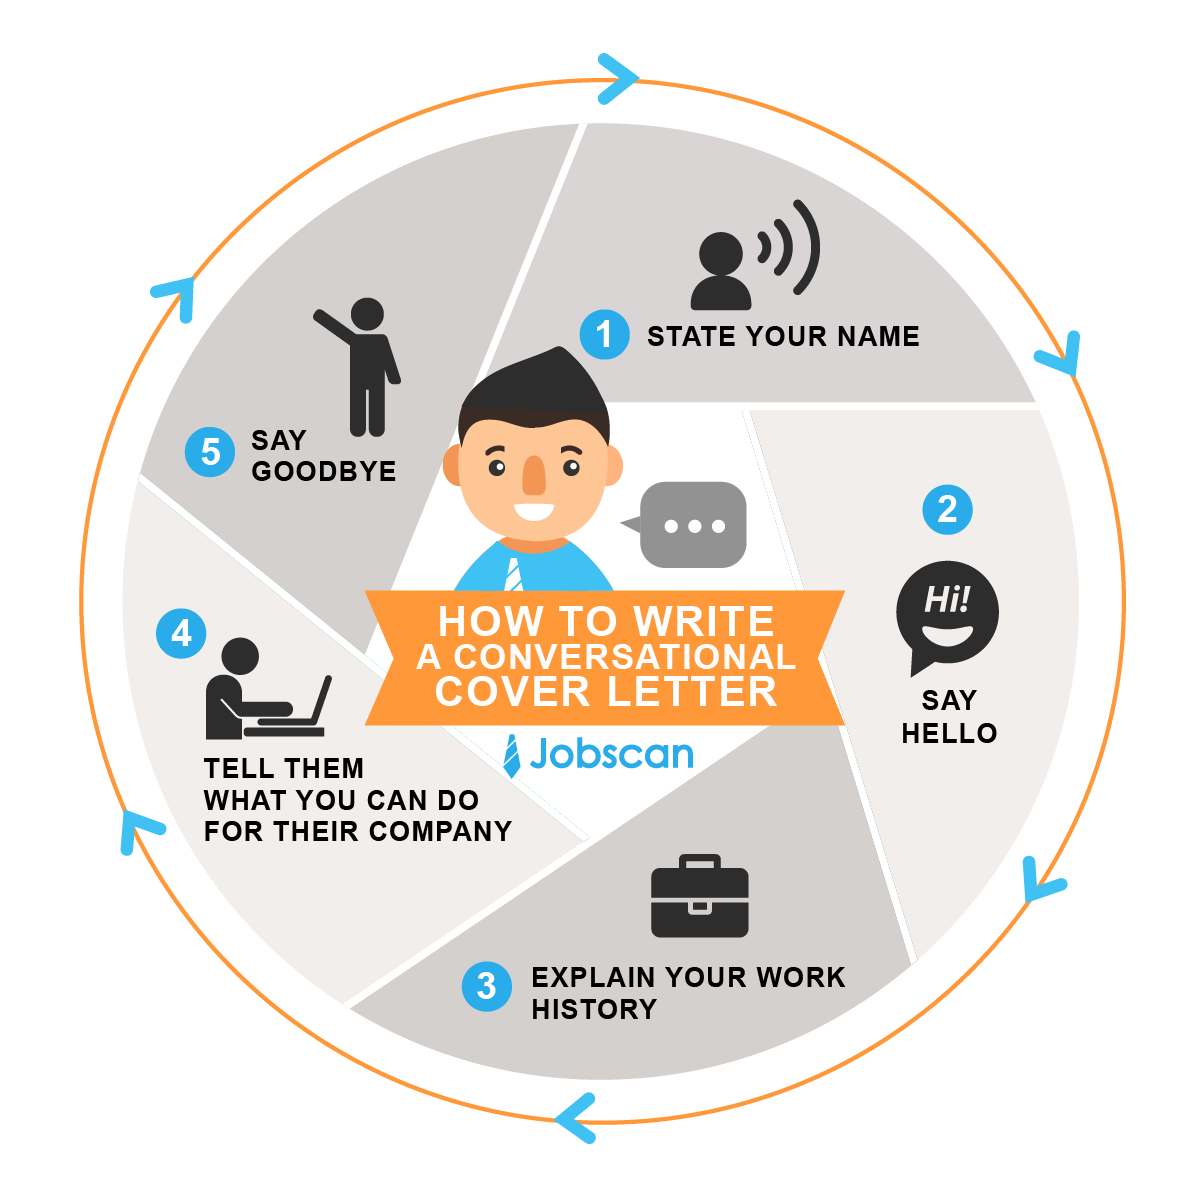 Cover Letter Writing Guide - Jobscan